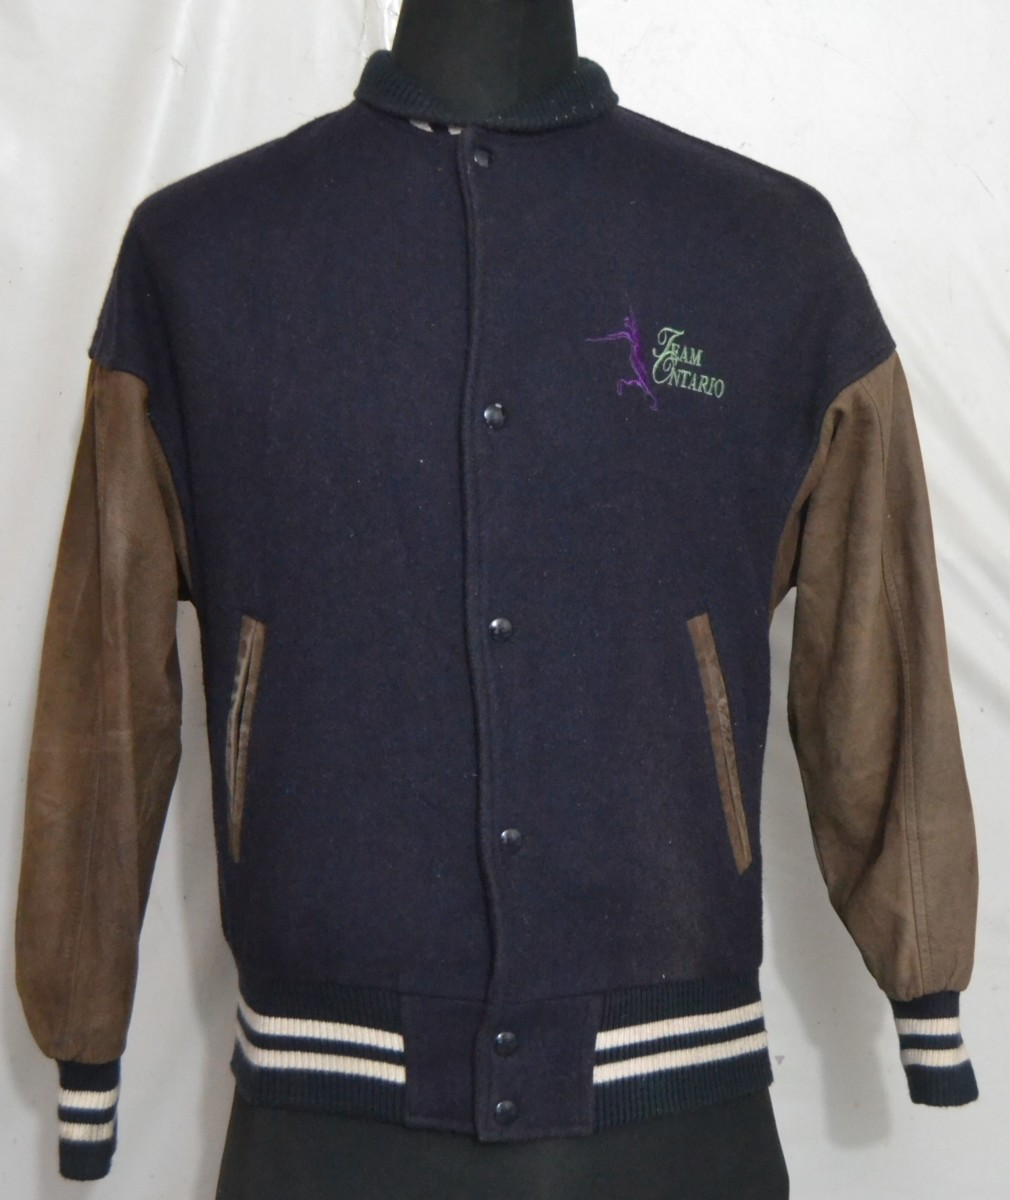 ONTARIO TEAM By HARPURS Menu0026#39;s Varsity/Baseball Jacket With Leather Sleeves - Made In Canada (S ...